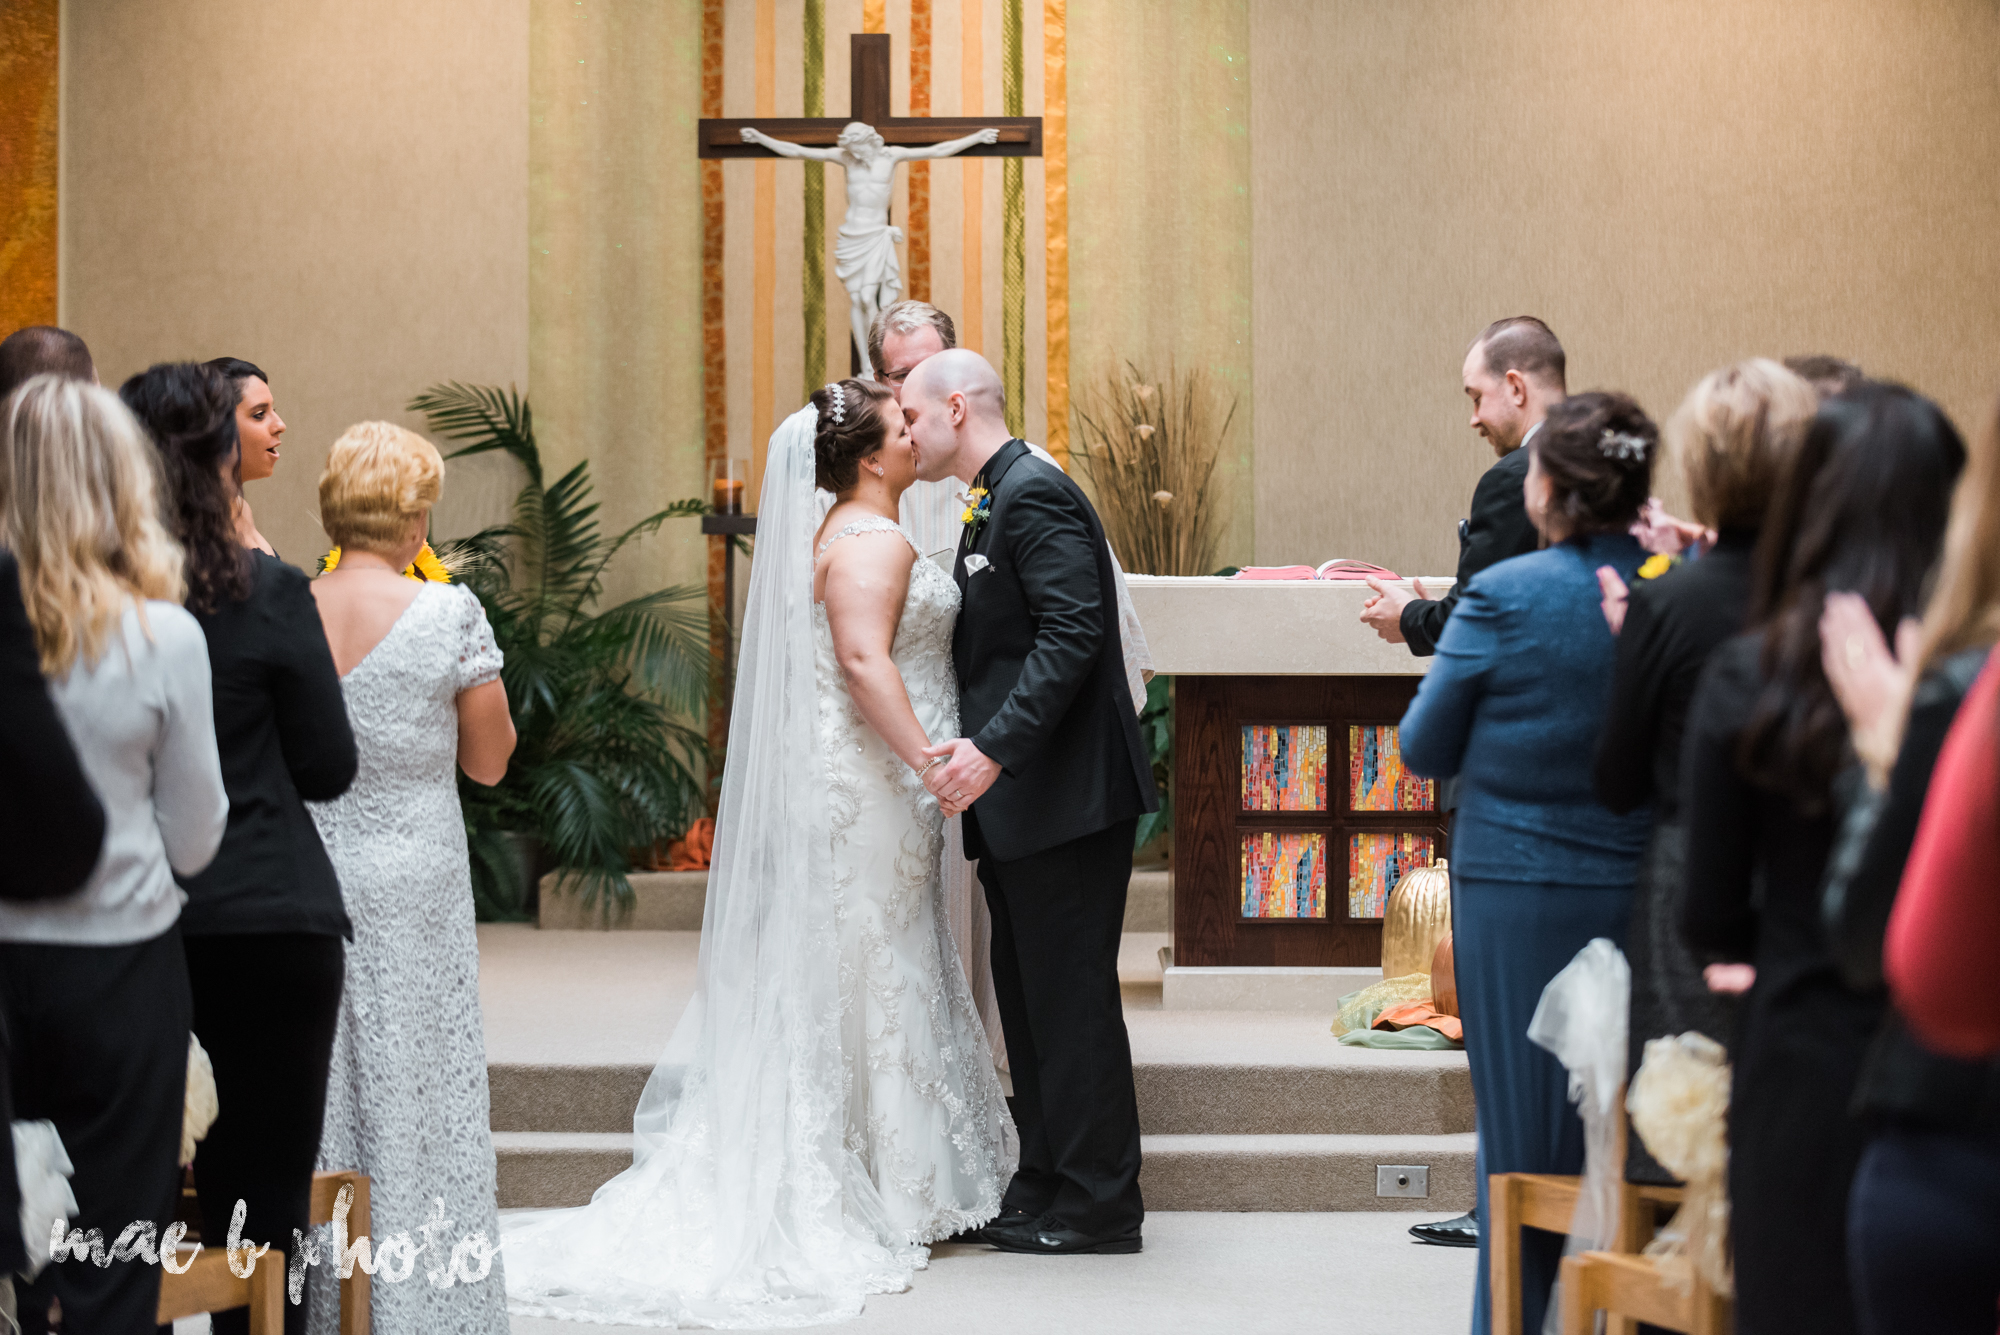 kaylynn & matt's fall zoo wedding at the cleveland metroparks zoo in cleveland ohio photographed by mae b photo-10.jpg